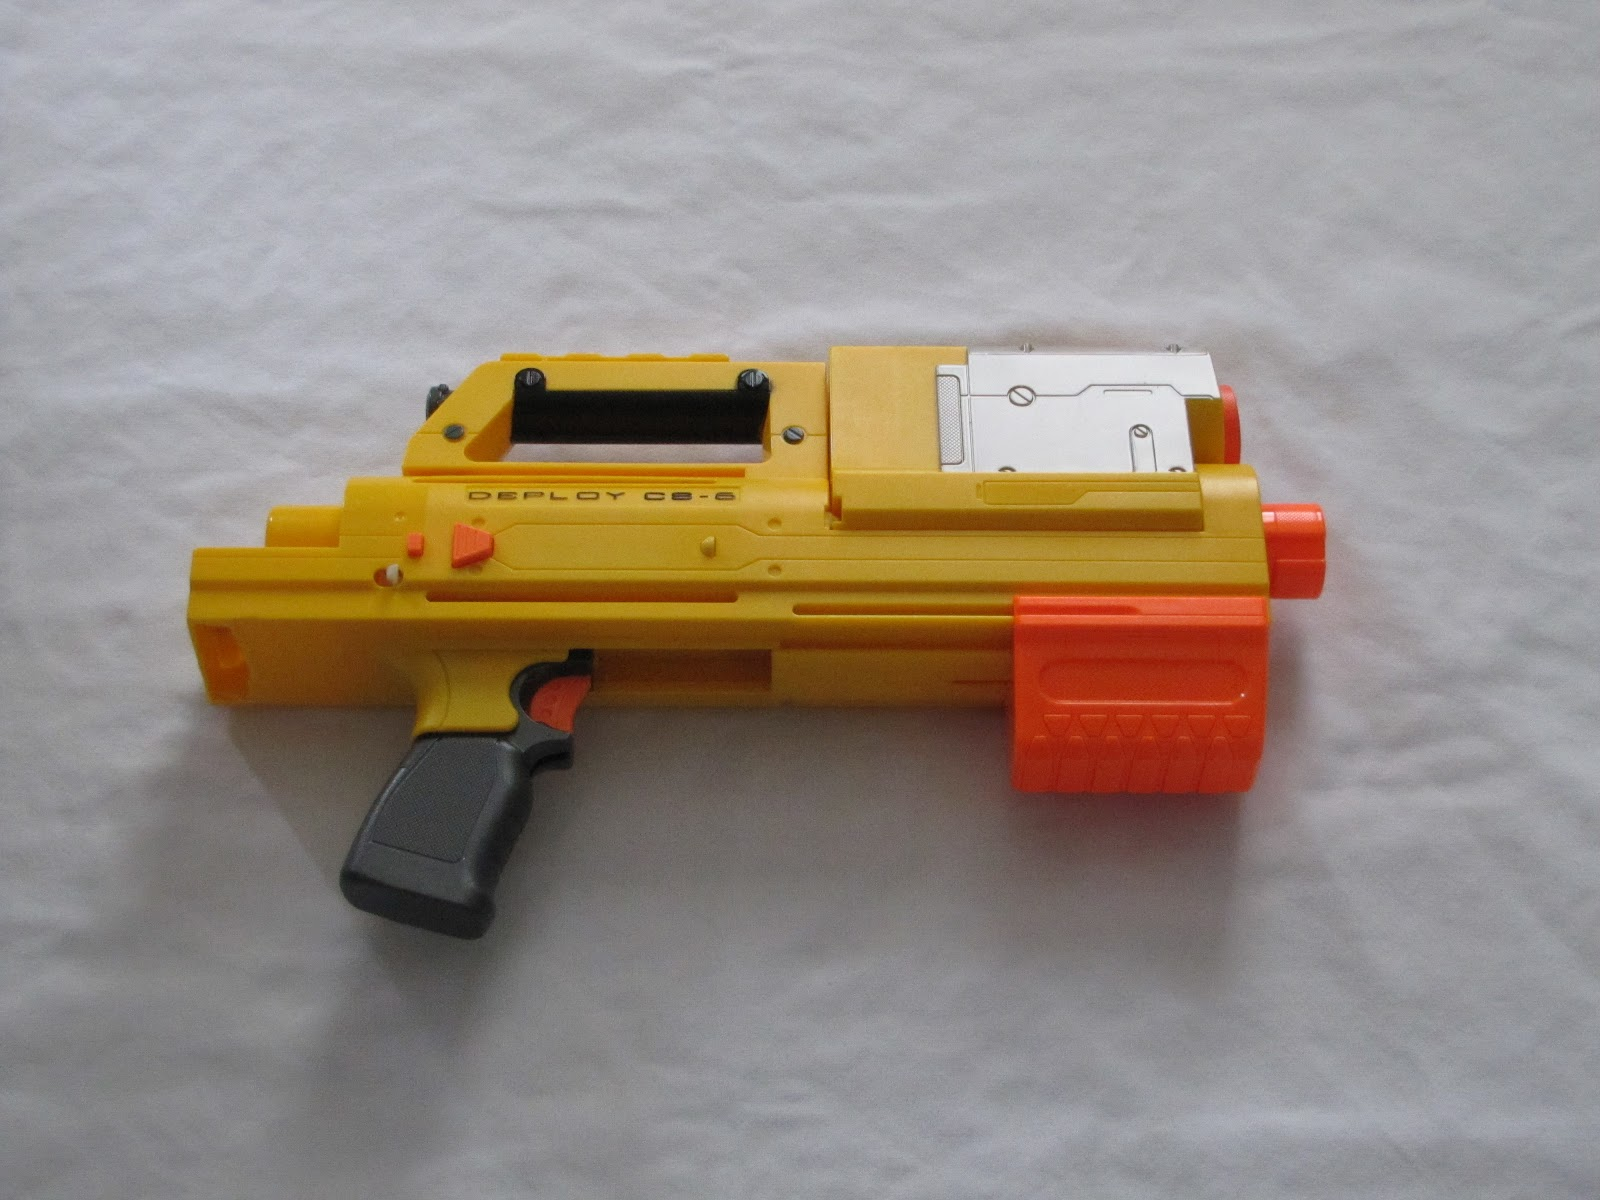 Blaster Mods and More: Nerf Deploy Review and Mod  Blaster Mods an...